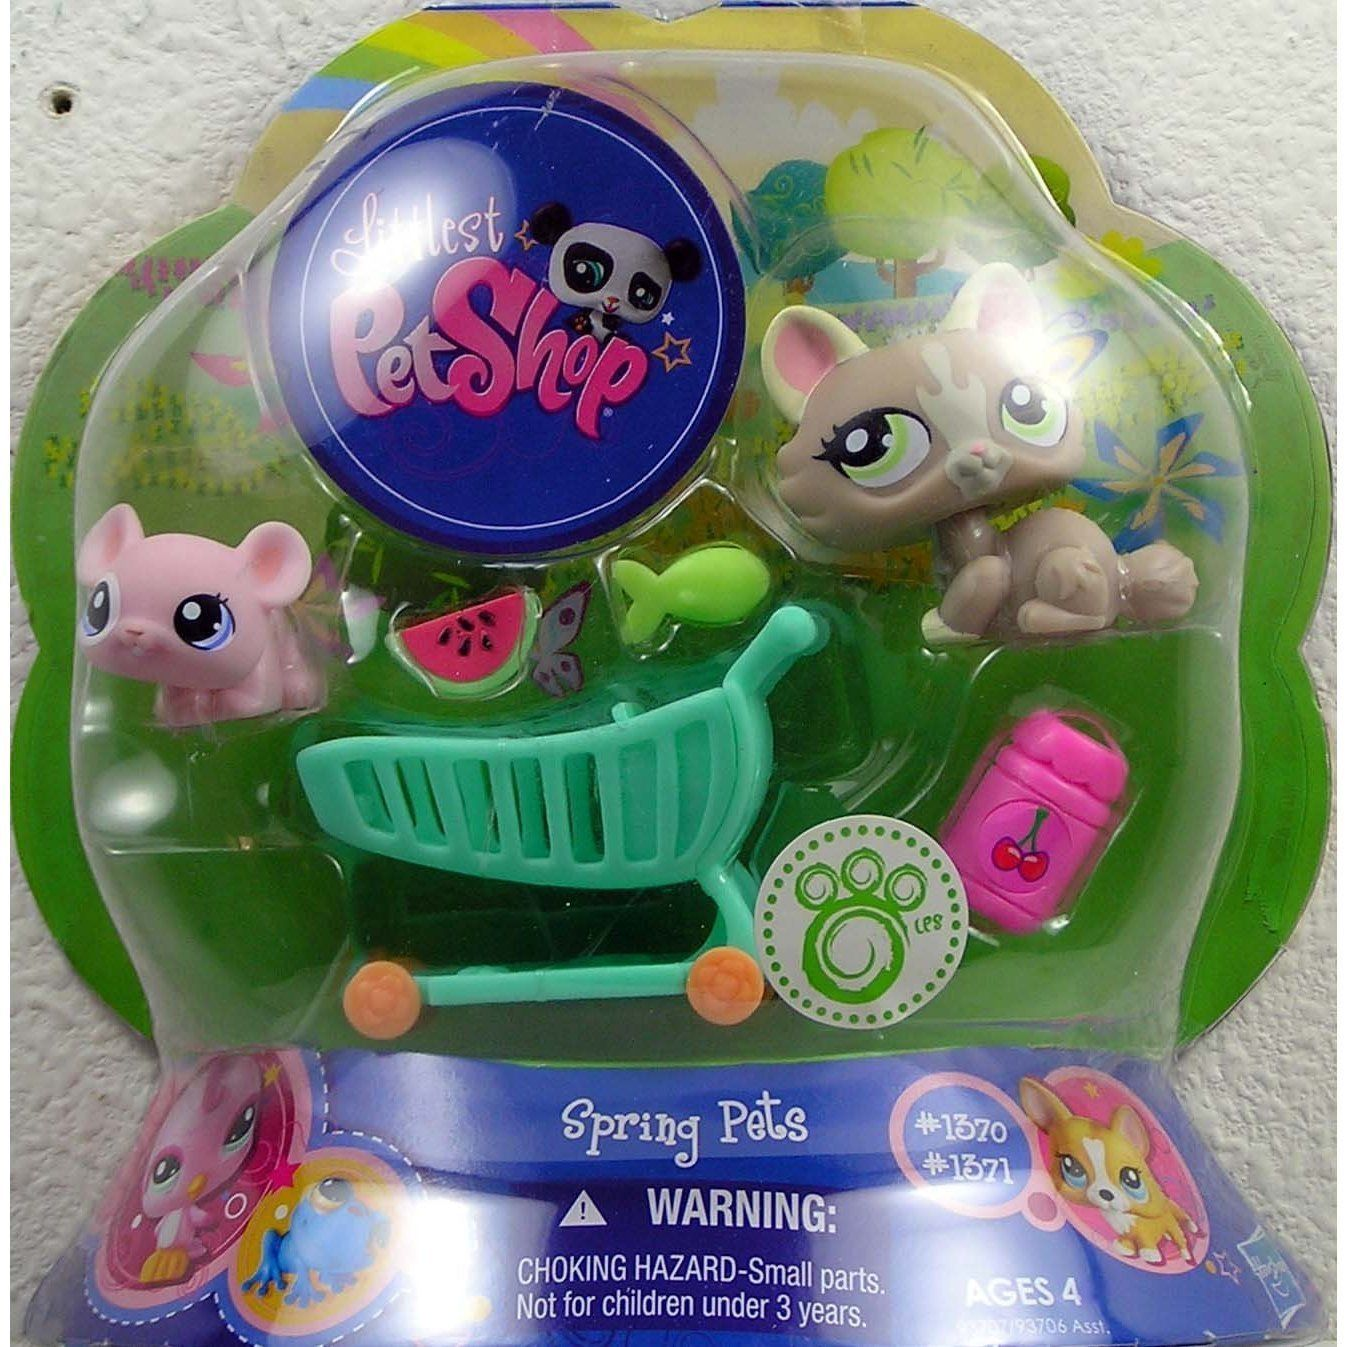 Littlest Pet Shop Spring Pets 2 Pack 1370 1371 Amazon Co Uk Toys Games Lps Pets Lps Toys Lps Littlest Pet Shop